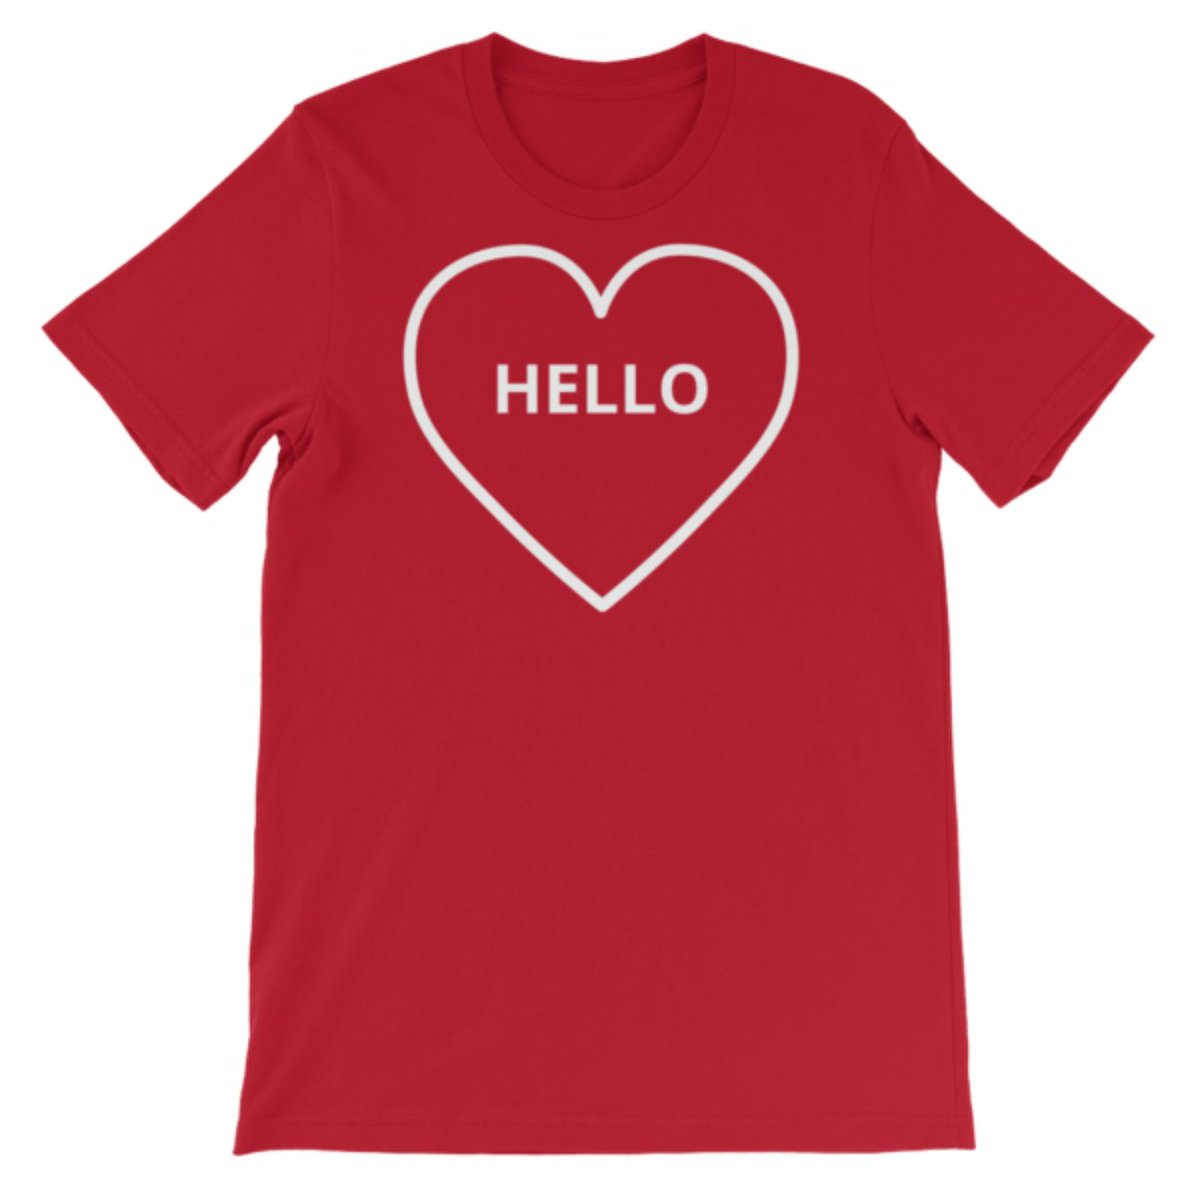 #Hello or customize your message https://t.co/GLxVbJ5x1o . #textme or customize your message https://t.co/TwOe5hBnuJ . . #allographictees #candyhearts #ValentinesDay #ValentinesDayGift #ValentinesDayGifts #gift #giftidea #giftideas #valentine #bemyvalentine #conversationstarter https://t.co/ASBdQUeqAp